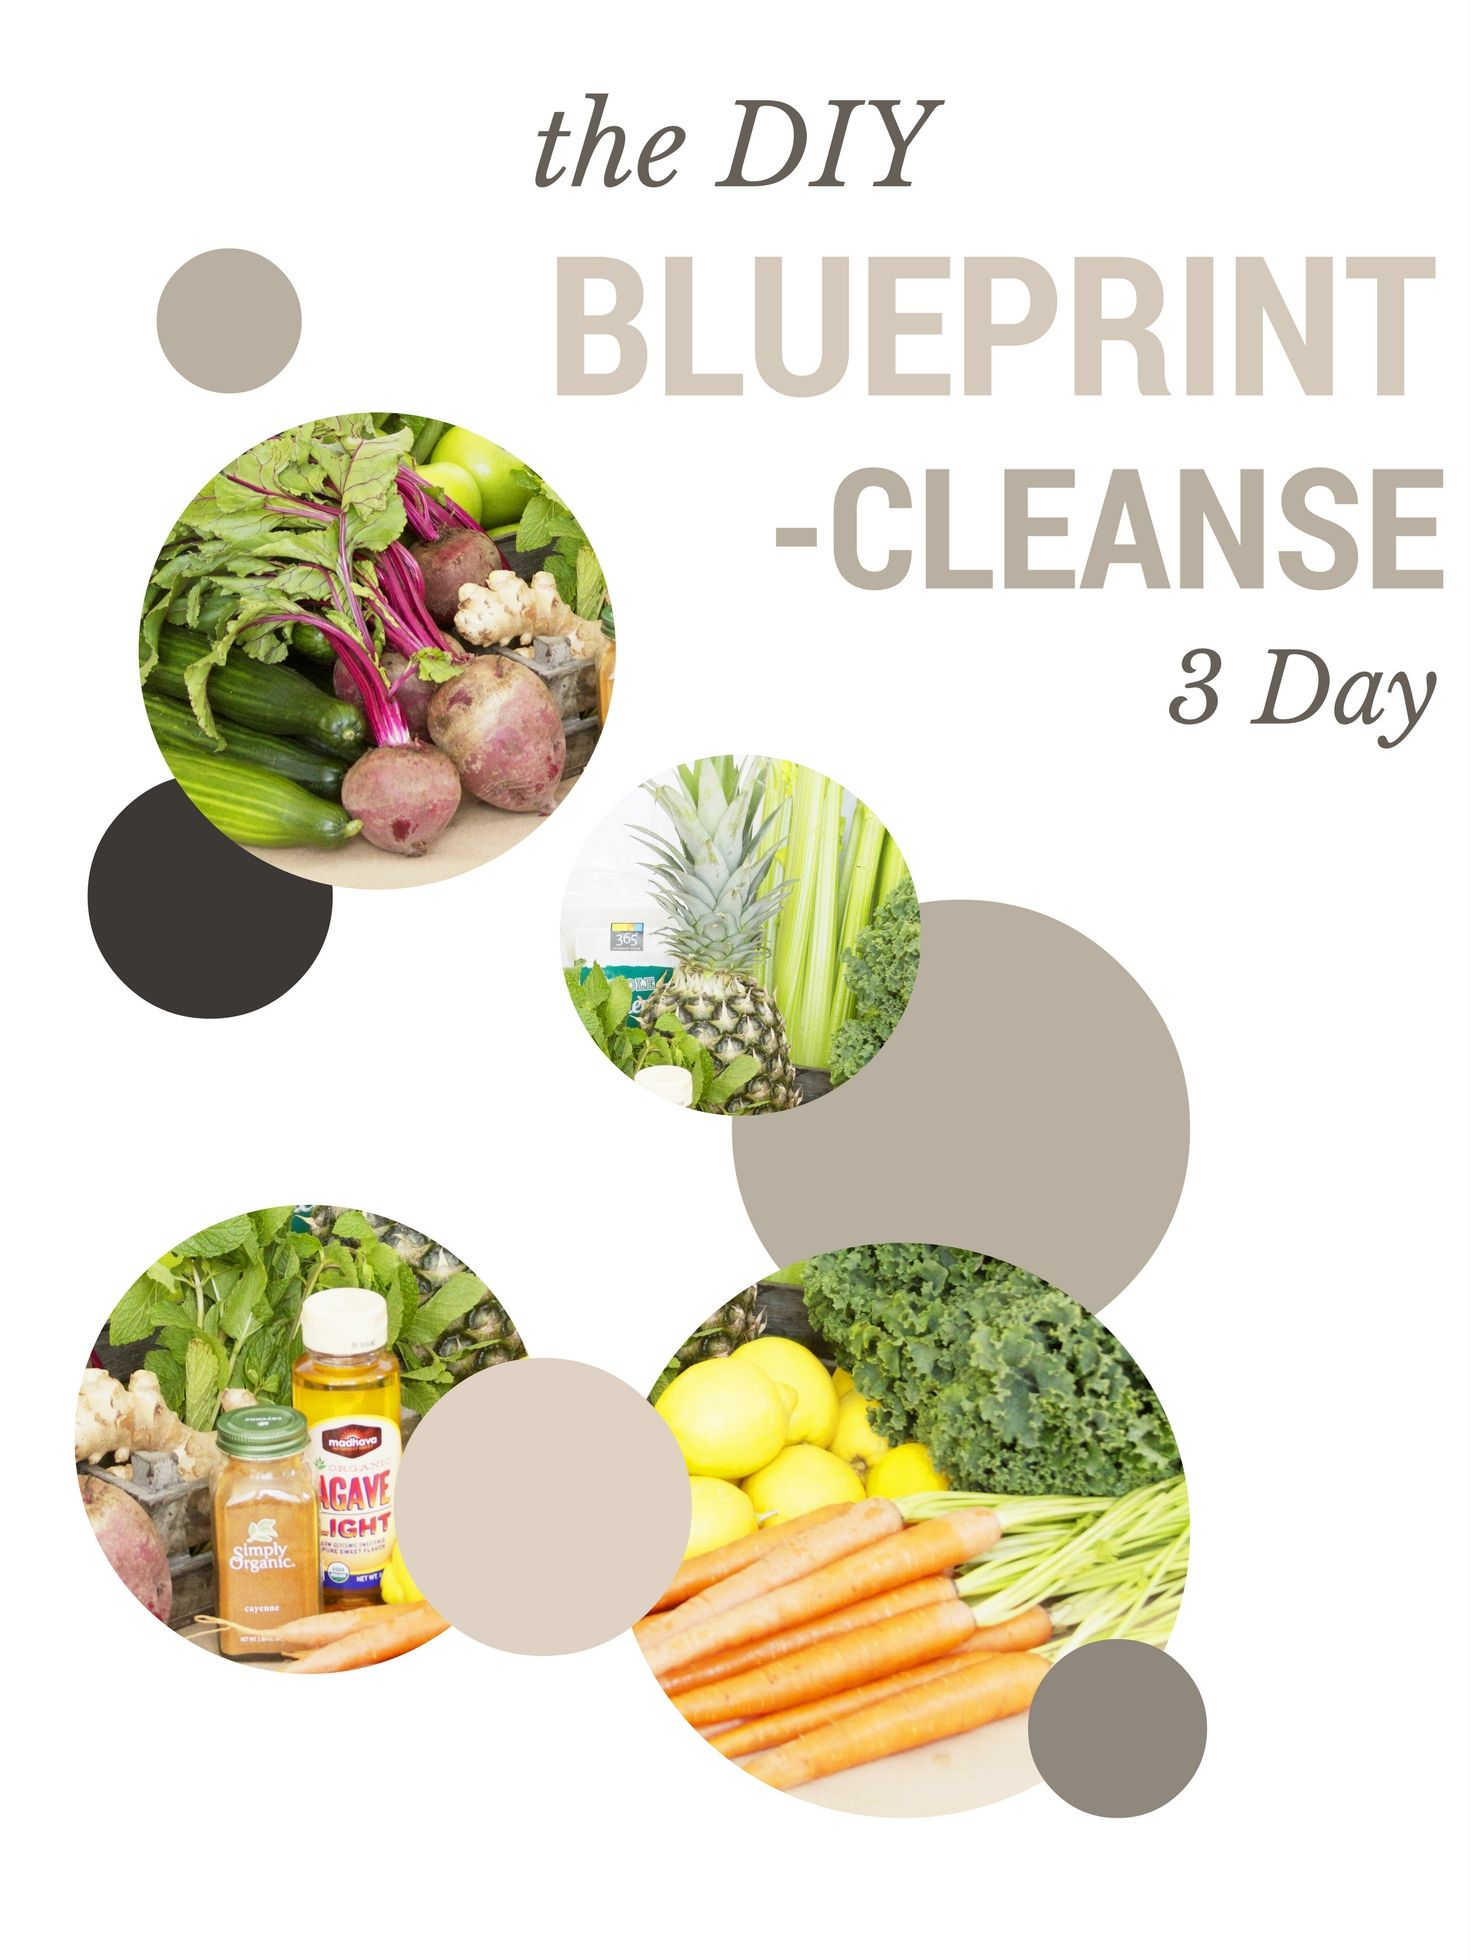 Diy blueprint cleanse pinterest blueprint cleanse cabbage soup so i did a diy blueprint cleanse when it comes to rapid weight loss programs ill try anything once ive done the cabbage soup diet the south beach diet malvernweather Gallery